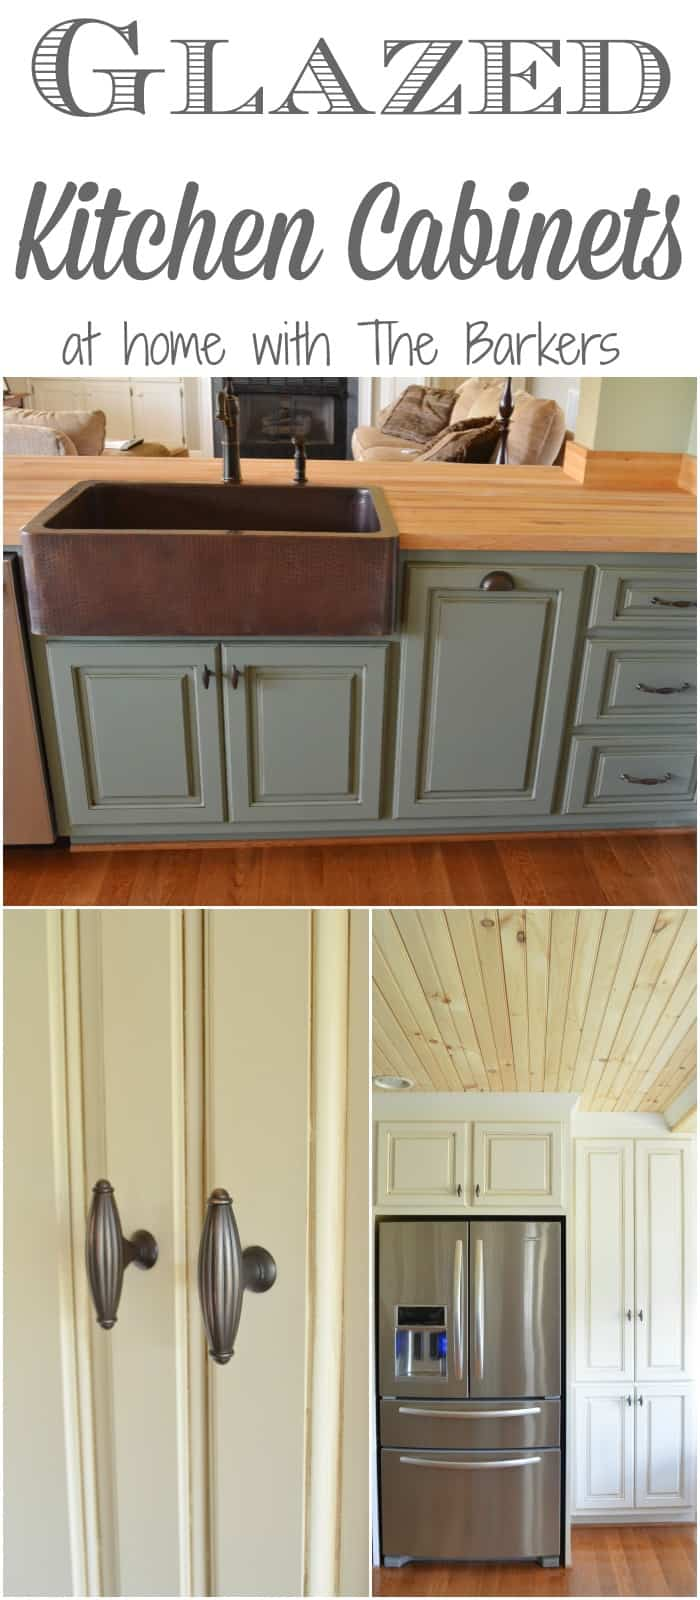 Glazed Kitchen Cabinets-